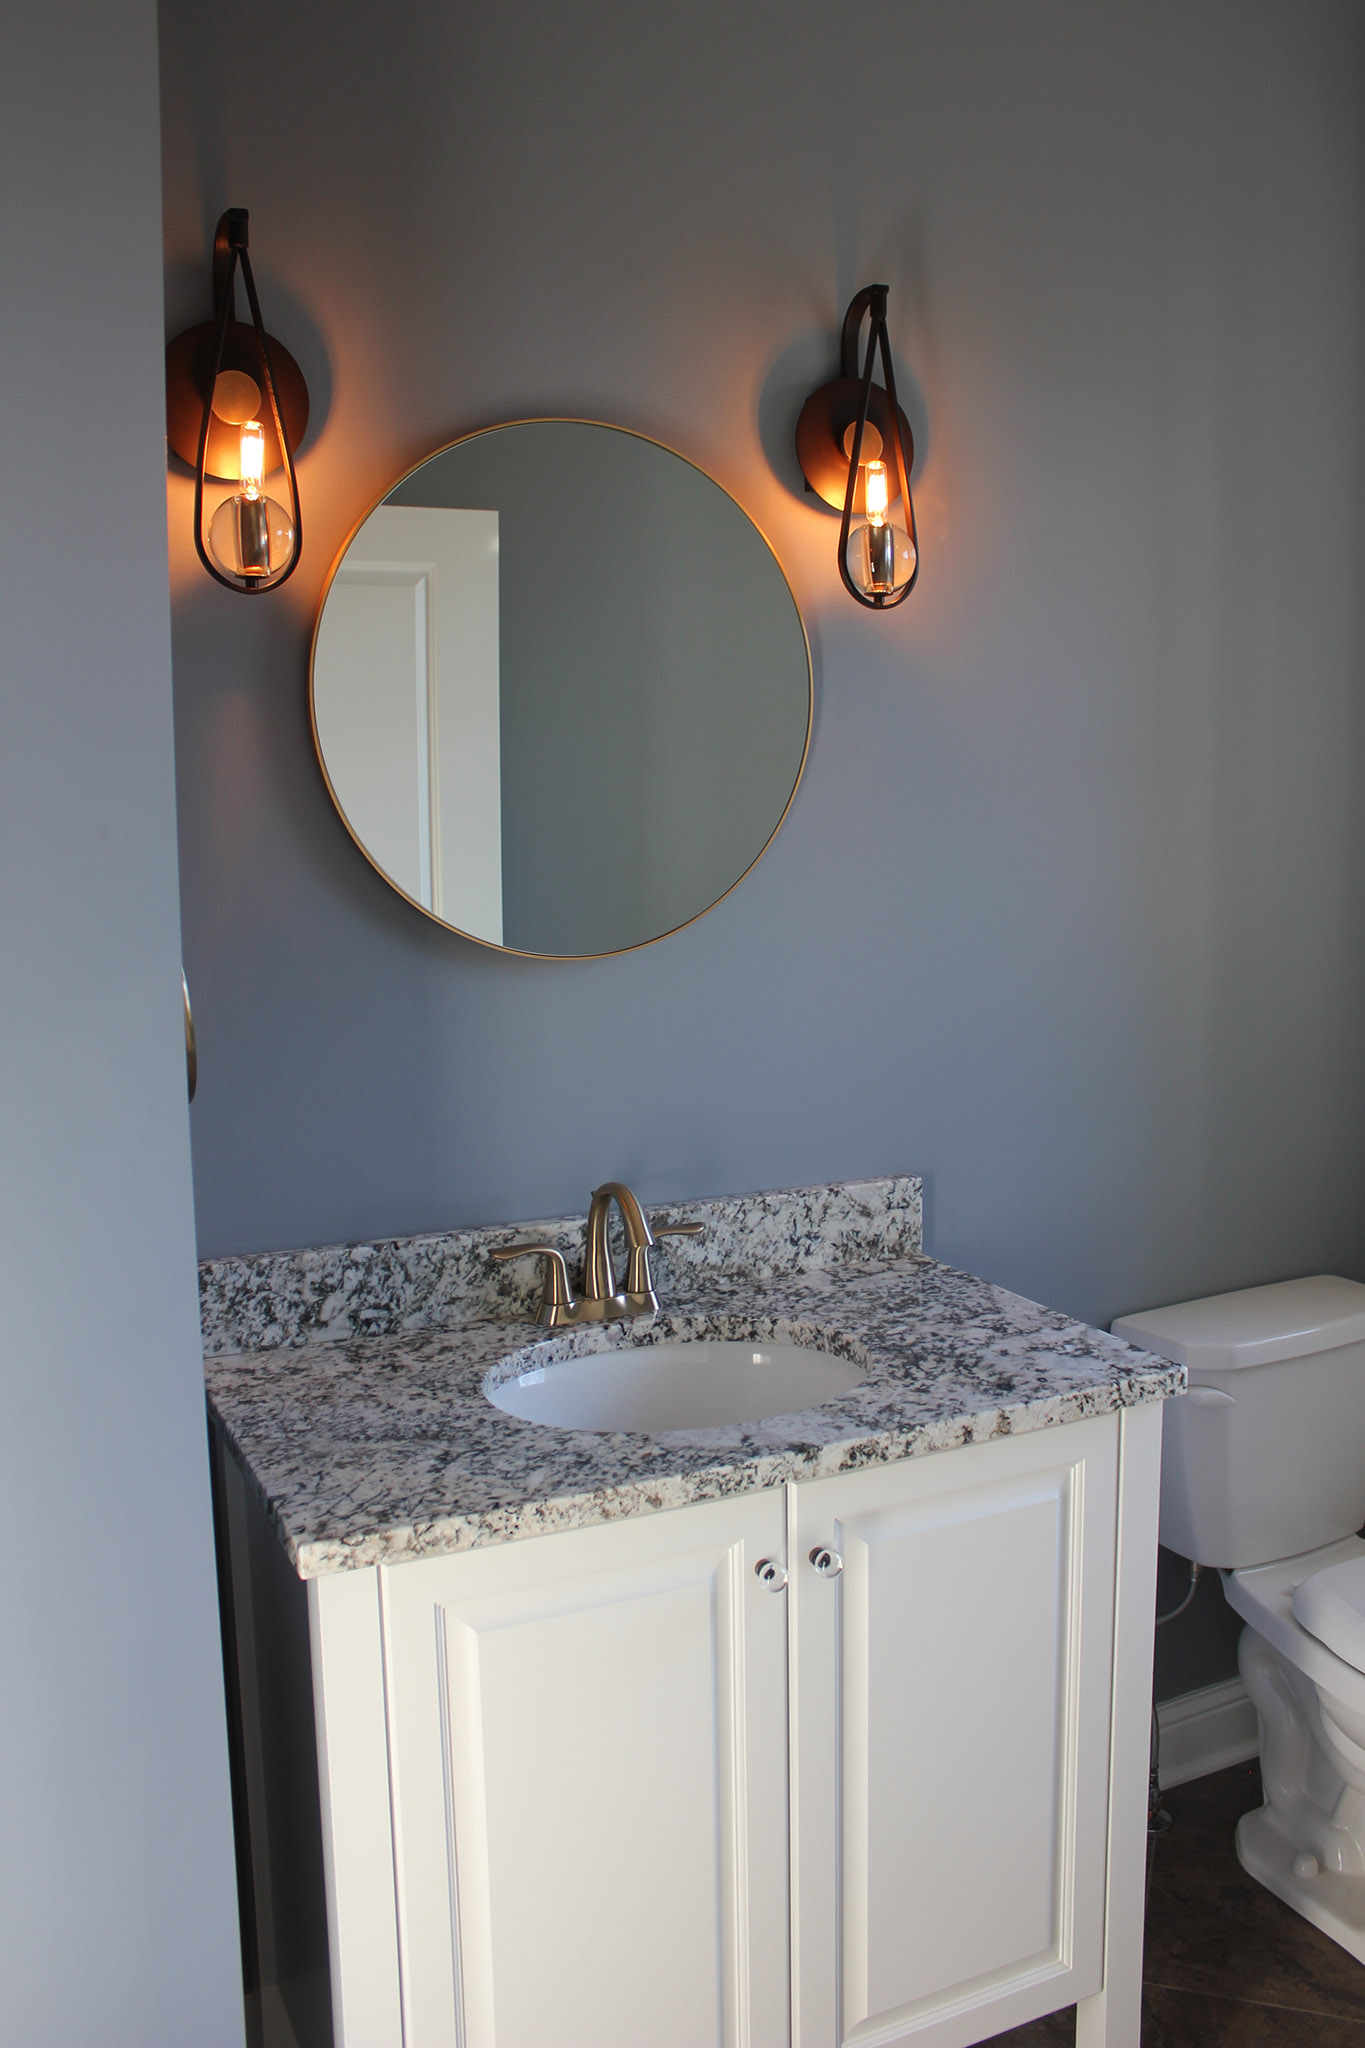 Free standing vanity with cultured marble top, ceramic undermount sink, round mirror and edison vanity lights